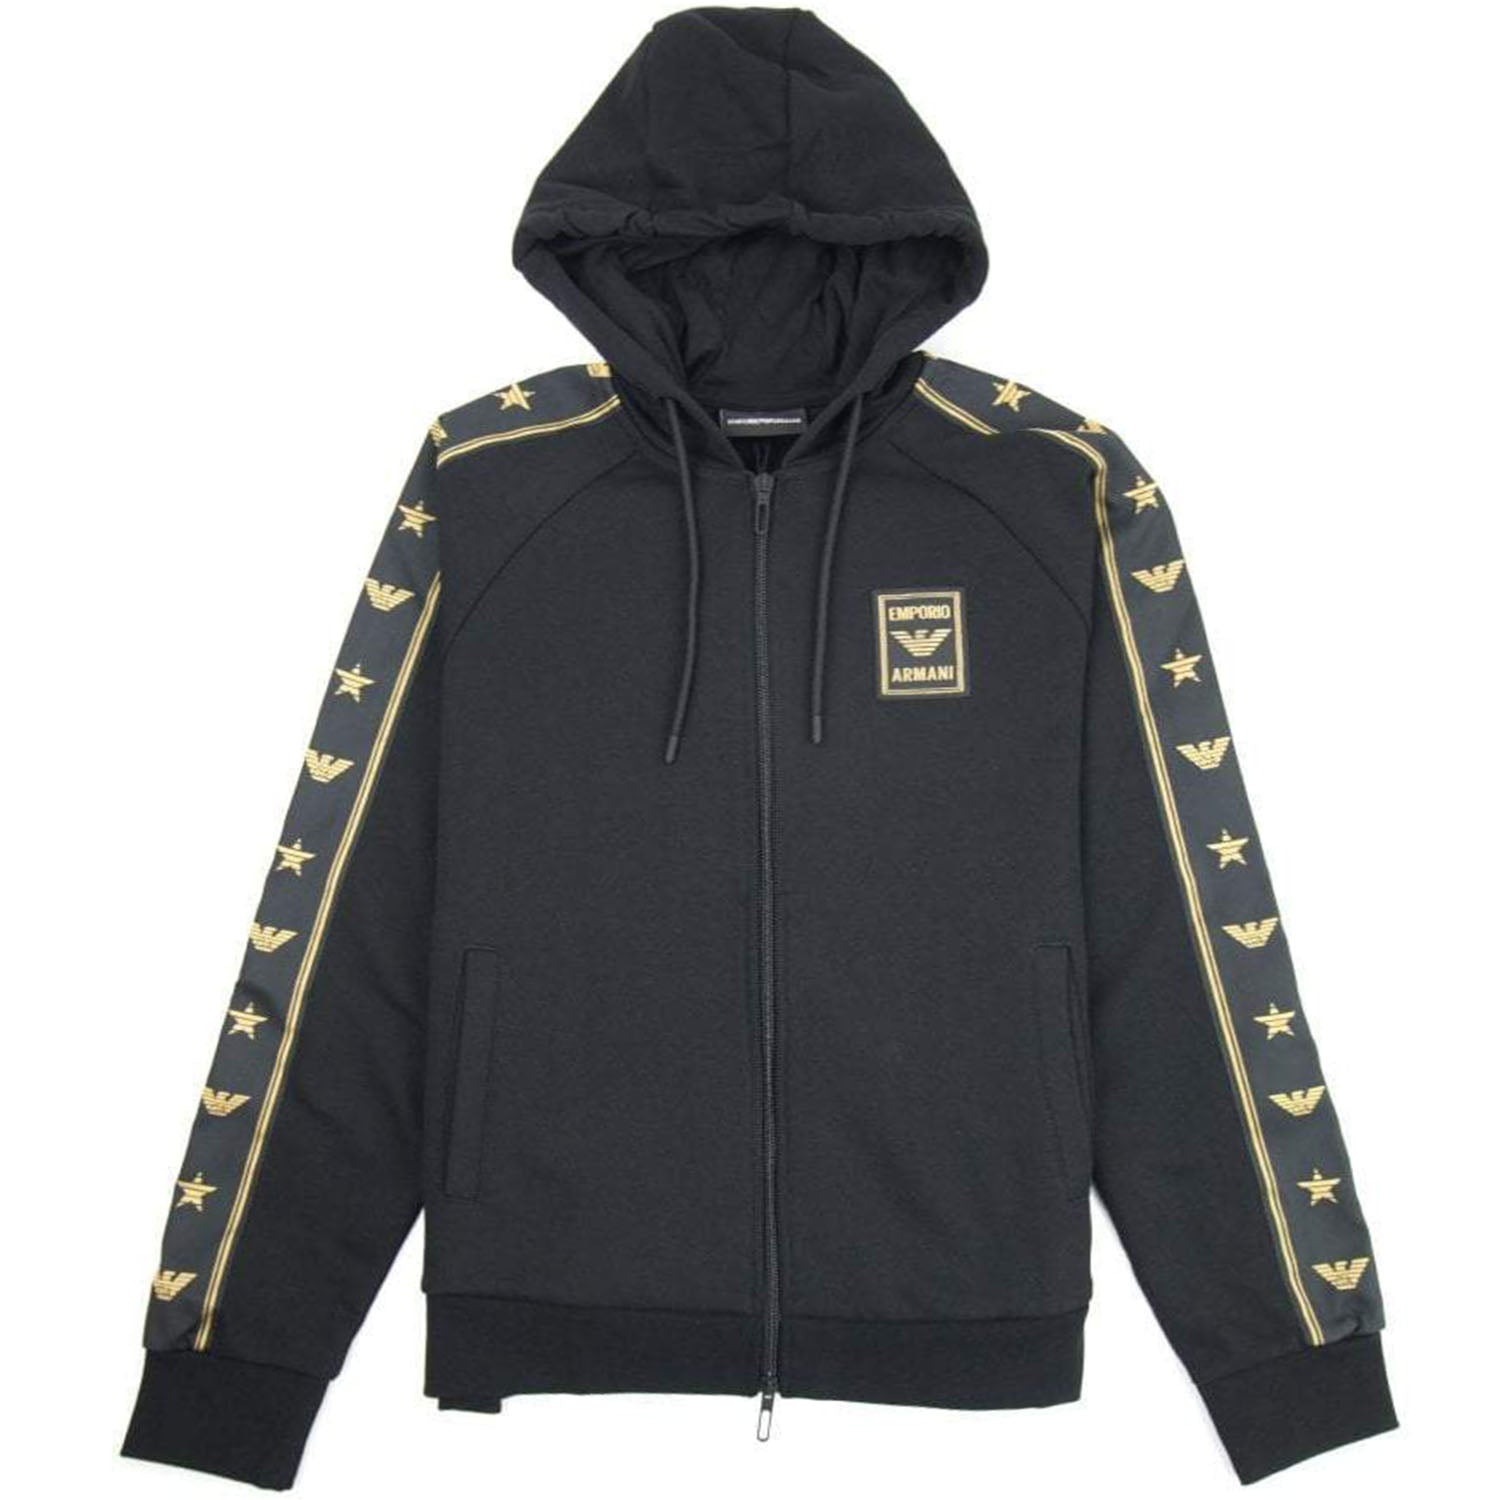 Emporio Armani Zip Black Hooded Sweatshirt